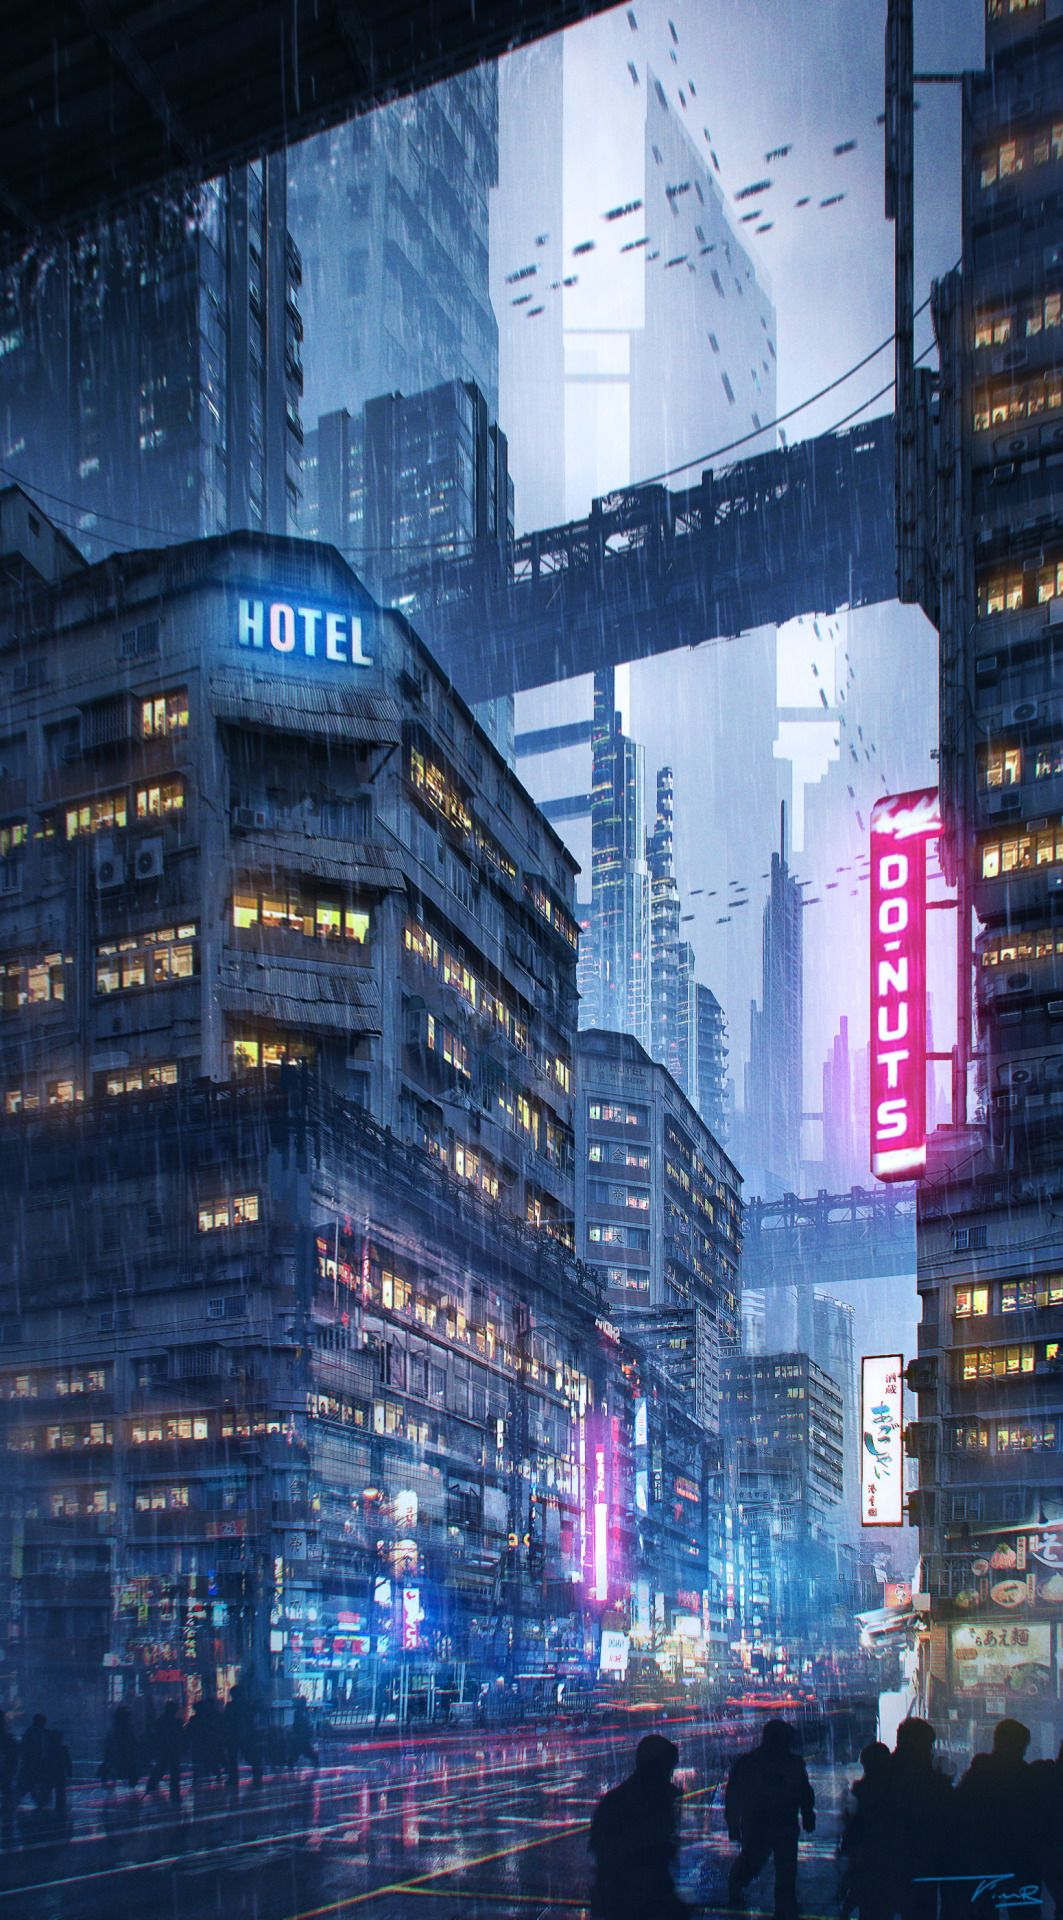 Properties leaves, anime futuristic city remarkable, useful